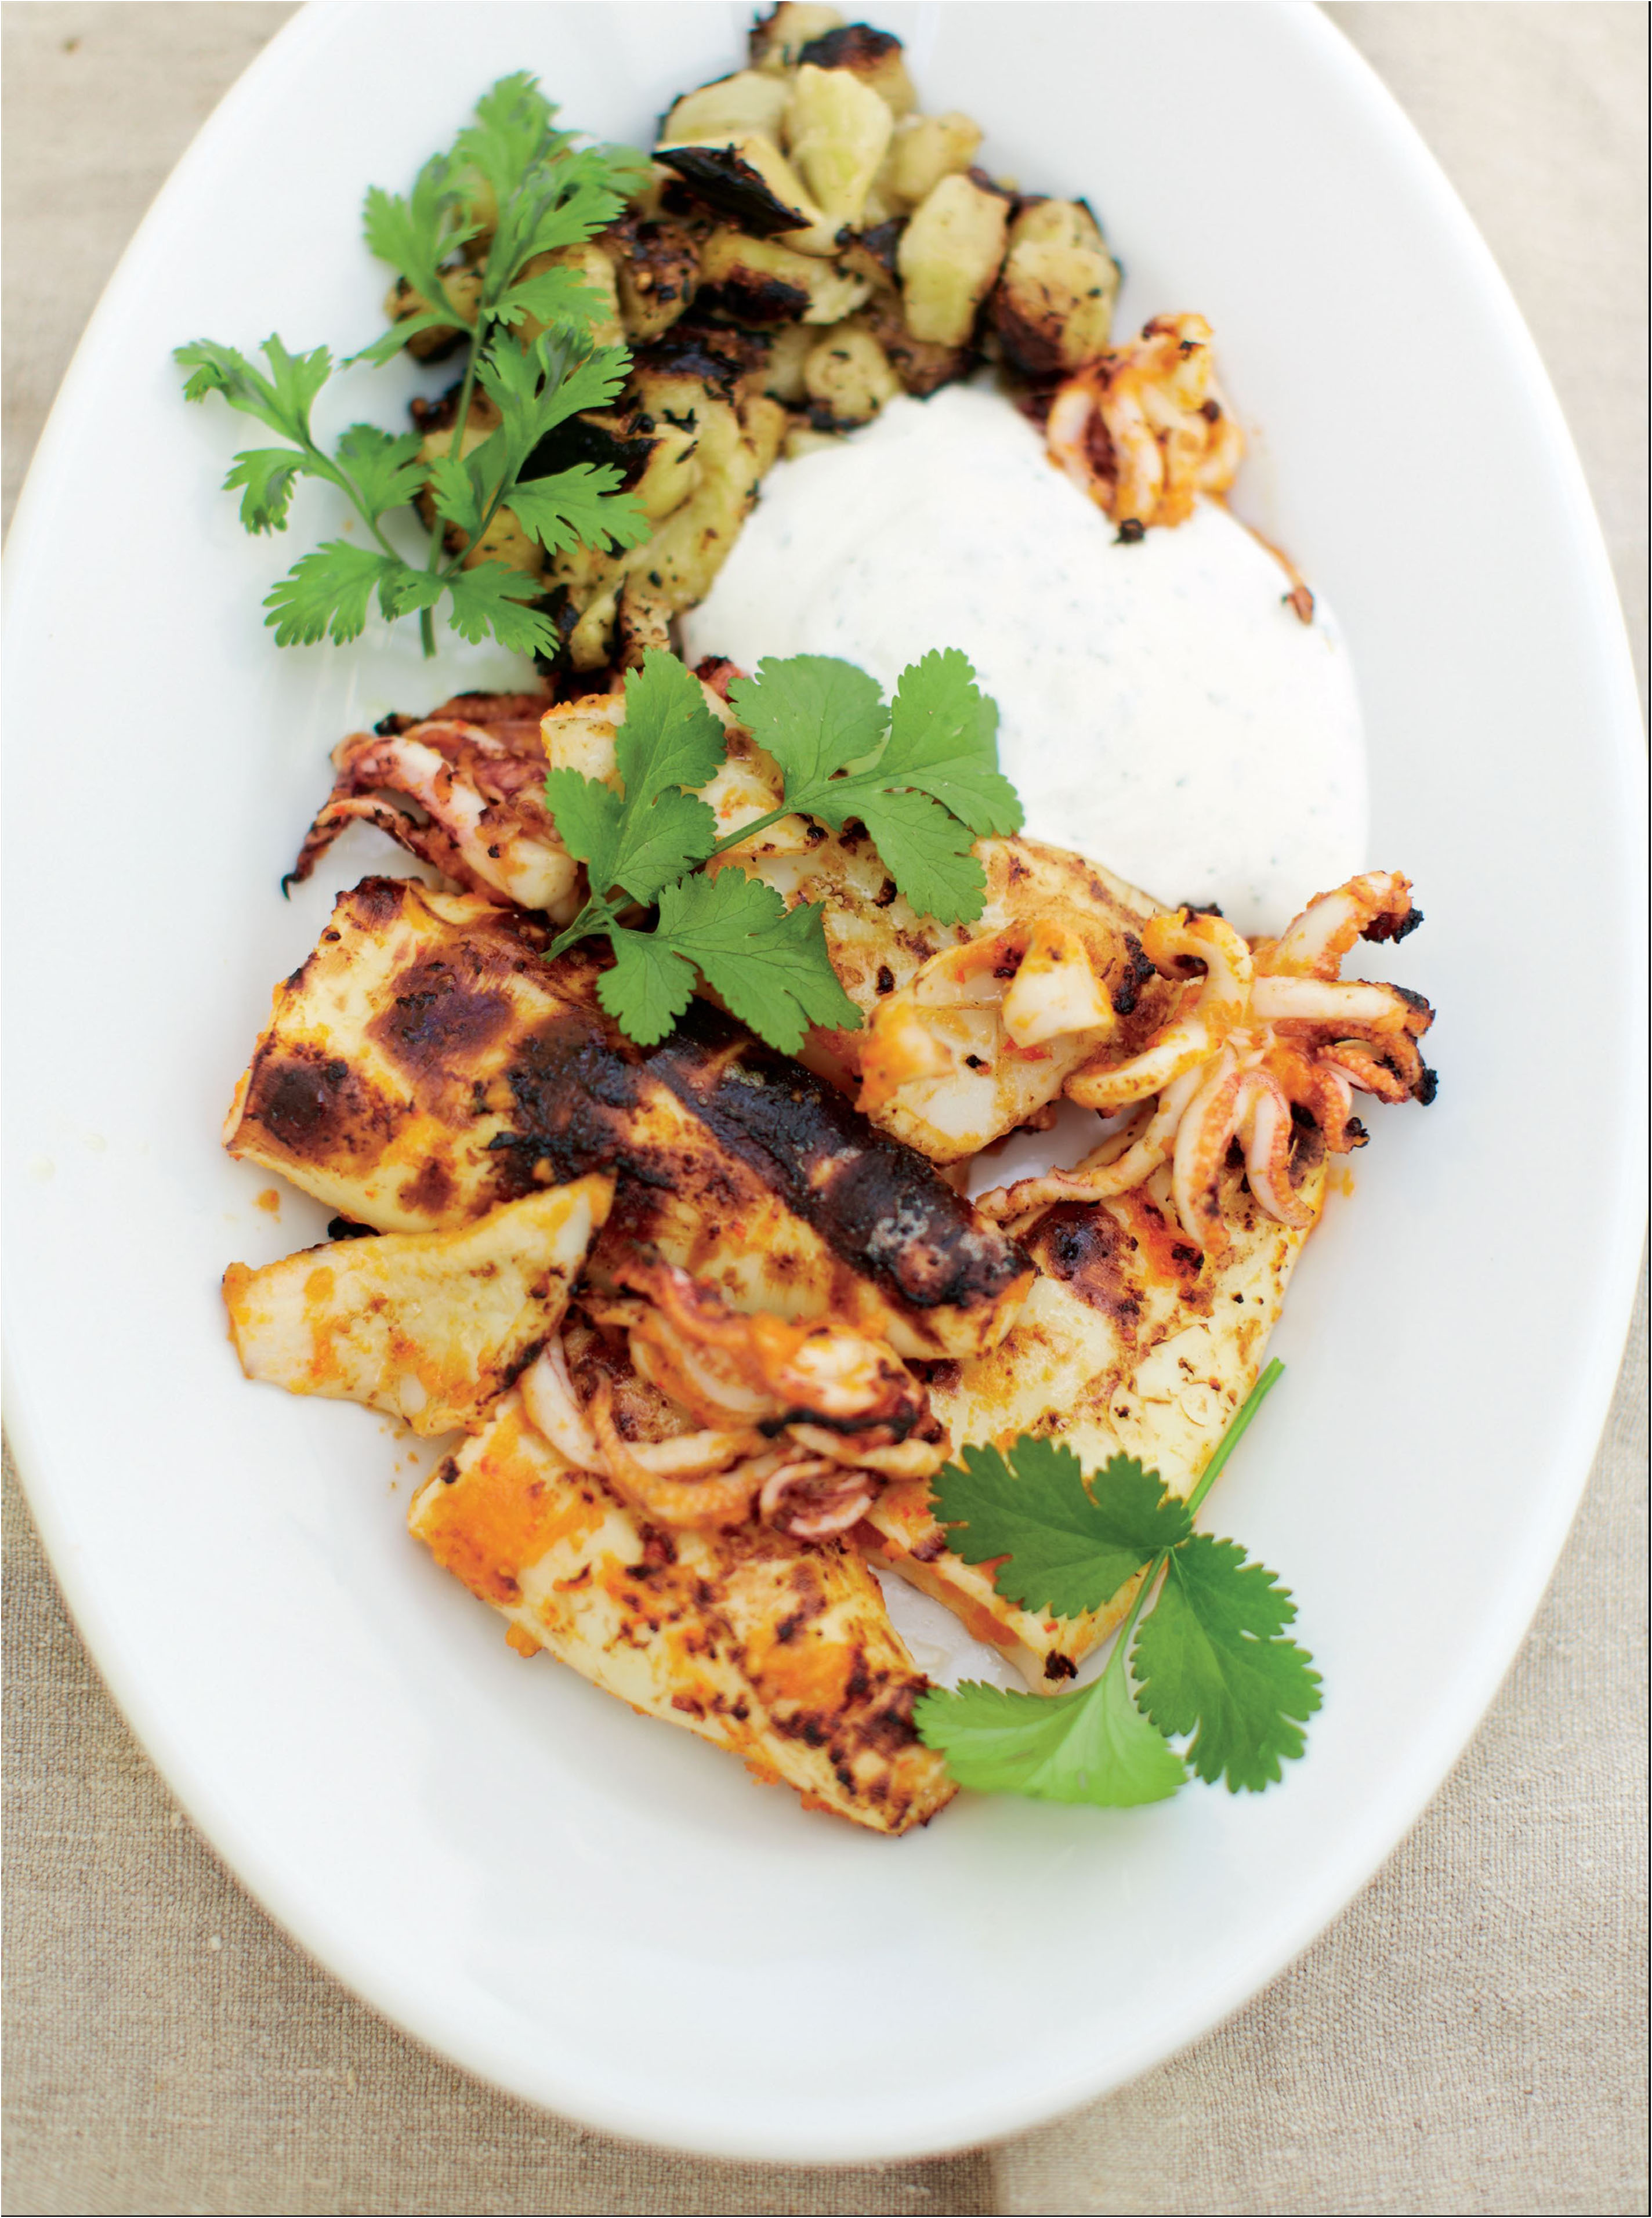 Barbecued chilli squid and aubergine with ginger and coriander yoghurt